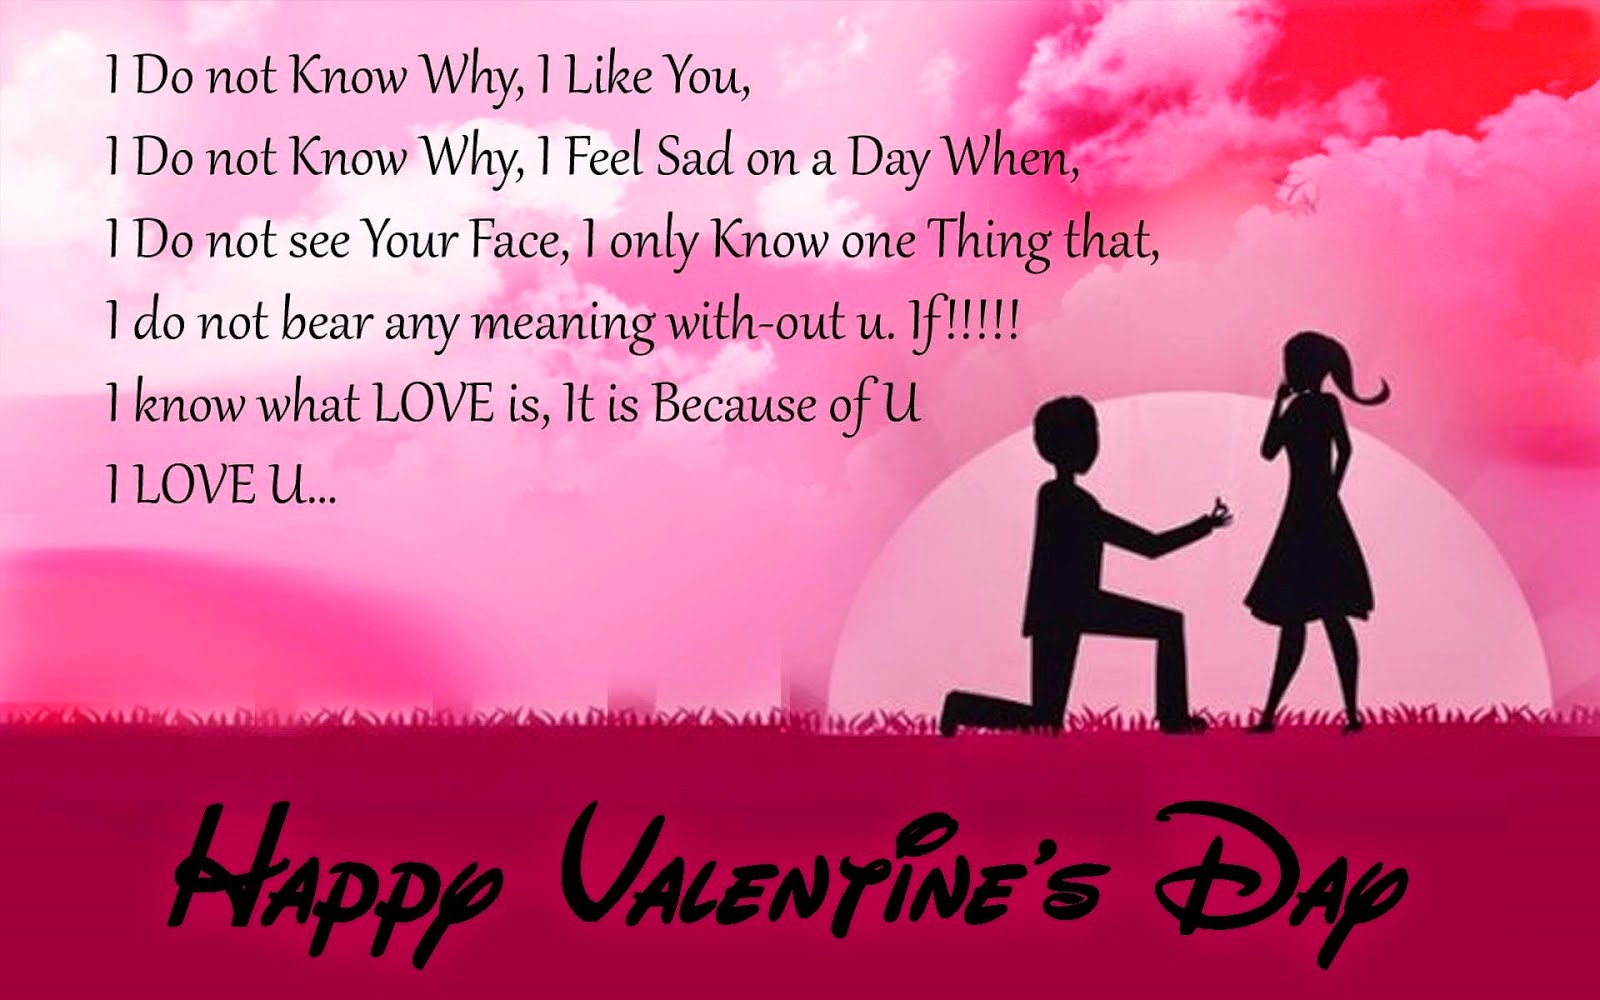 happy valentines day 2017 greetings wishes ideas happy new year 2017